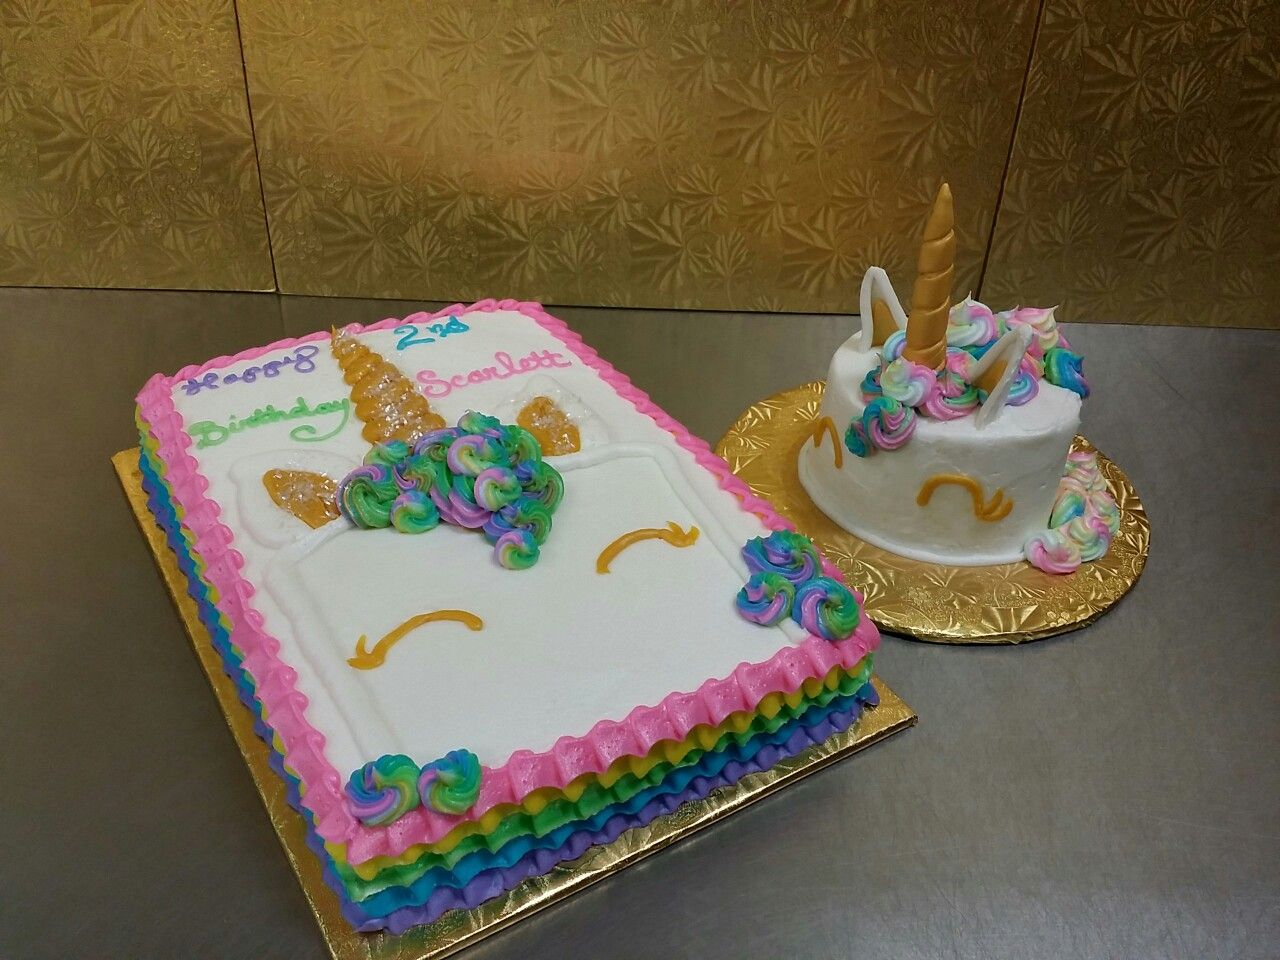 Unicorn Head Drawing On A Quarter Sheet Cake With Rainbow Ruffles